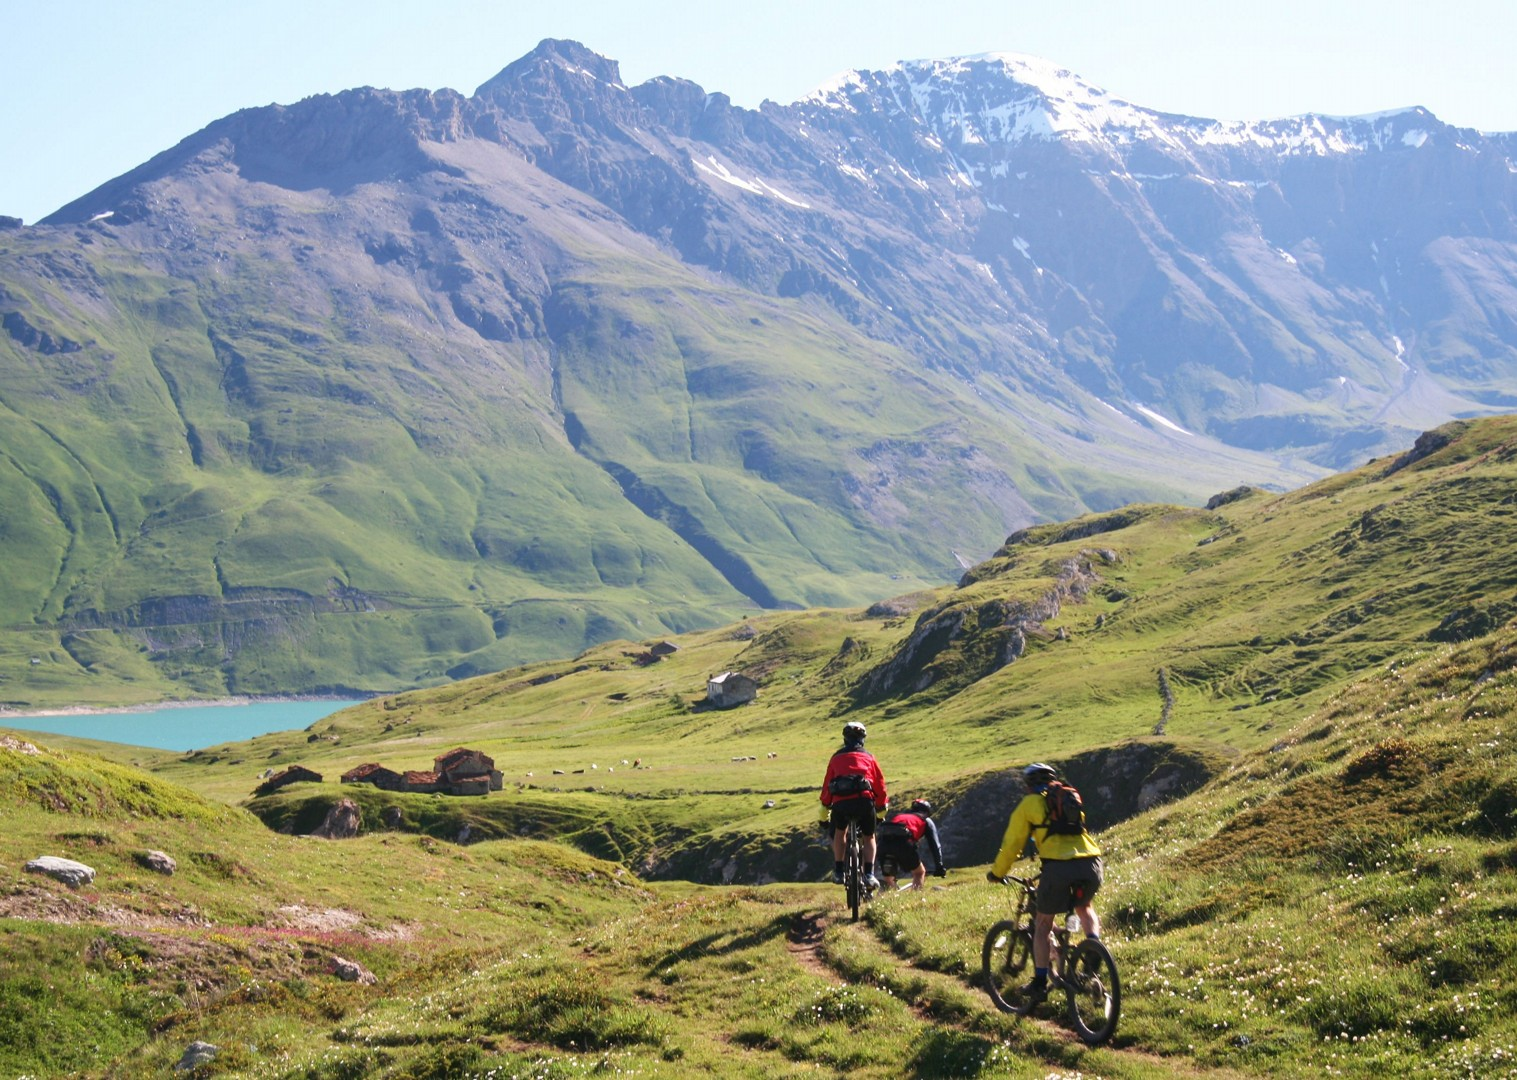 alps-mountain-bike-holiday-in-the-alps-alpine-adventure.JPG - Italy and France - Alpine Adventure - Guided Mountain Bike Holiday - Mountain Biking